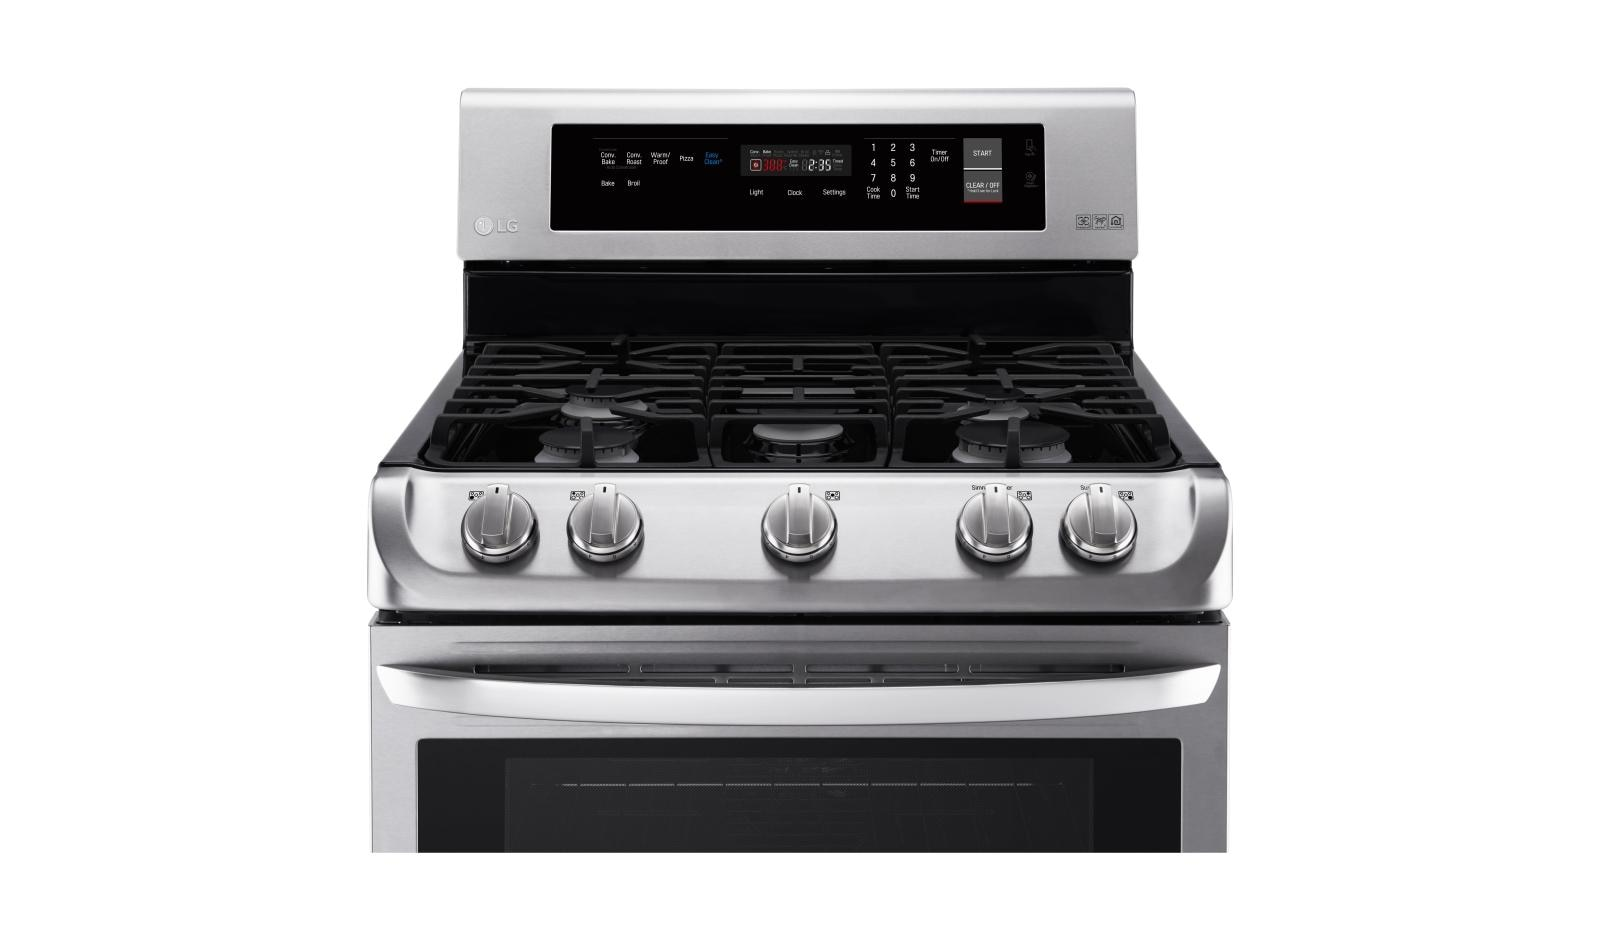 oven appliances stove range cr vs hero home best reports is and cooktop kitchen consumer wall which